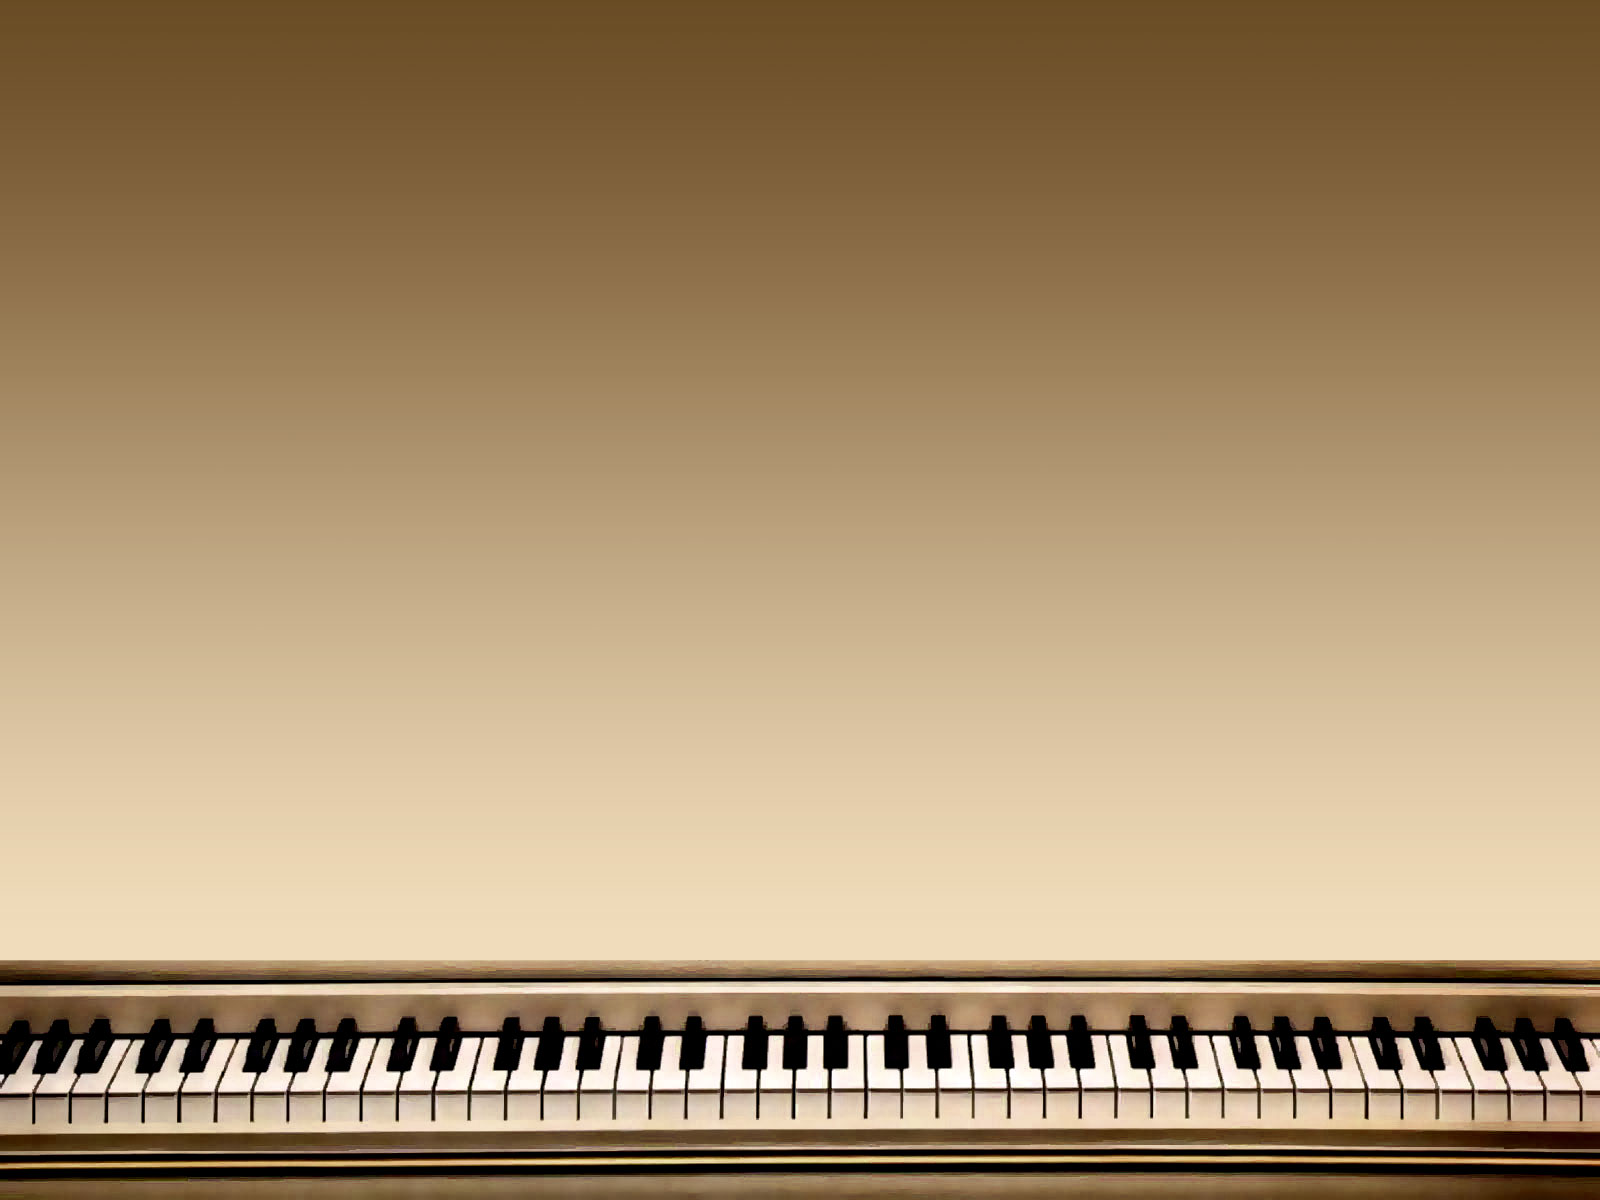 Backgrounds for music ppt. Clipart piano powerpoint background